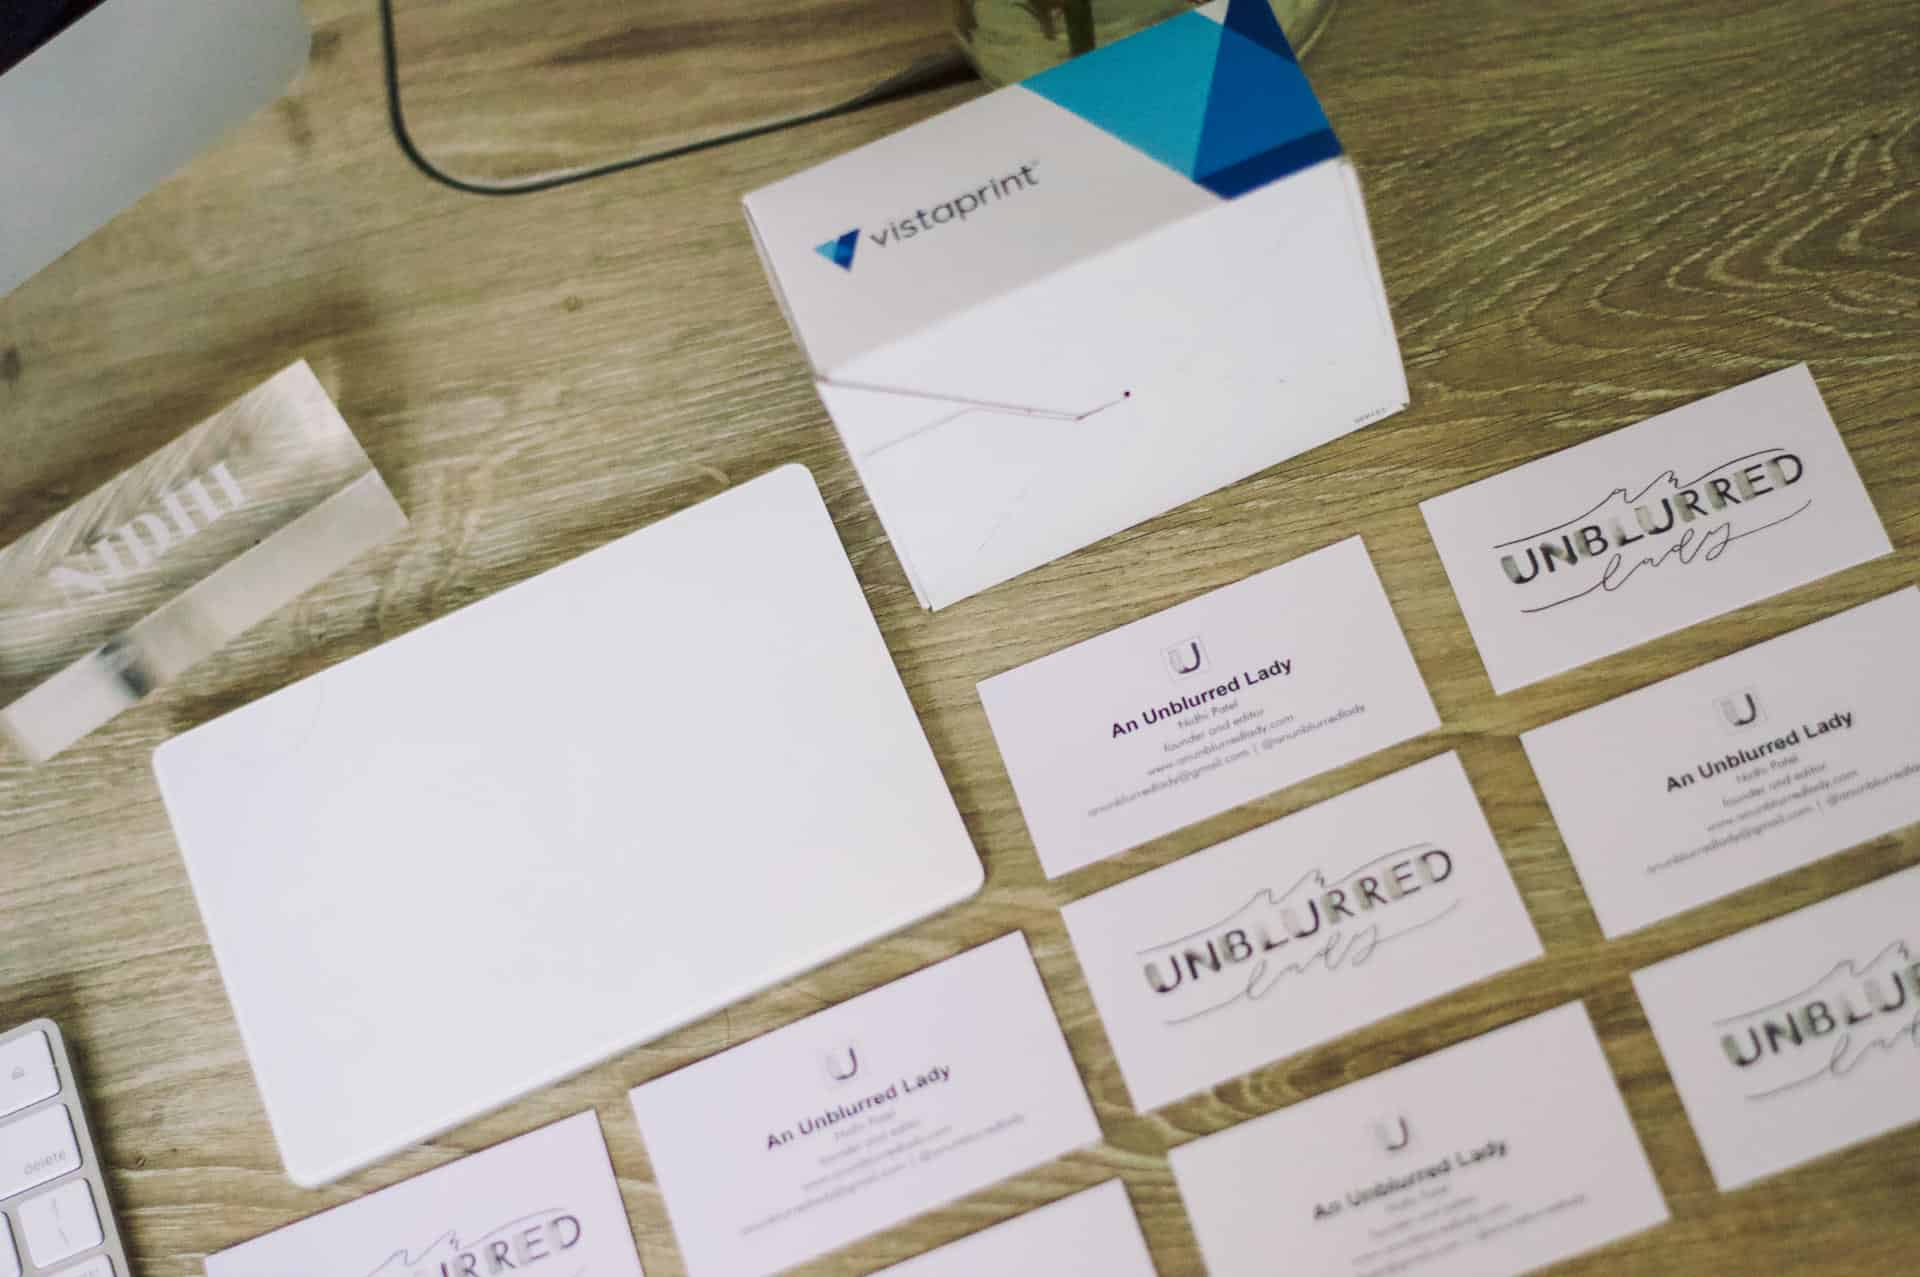 How to Create the Perfect Vistaprint Business Cards - An Unblurred Lady